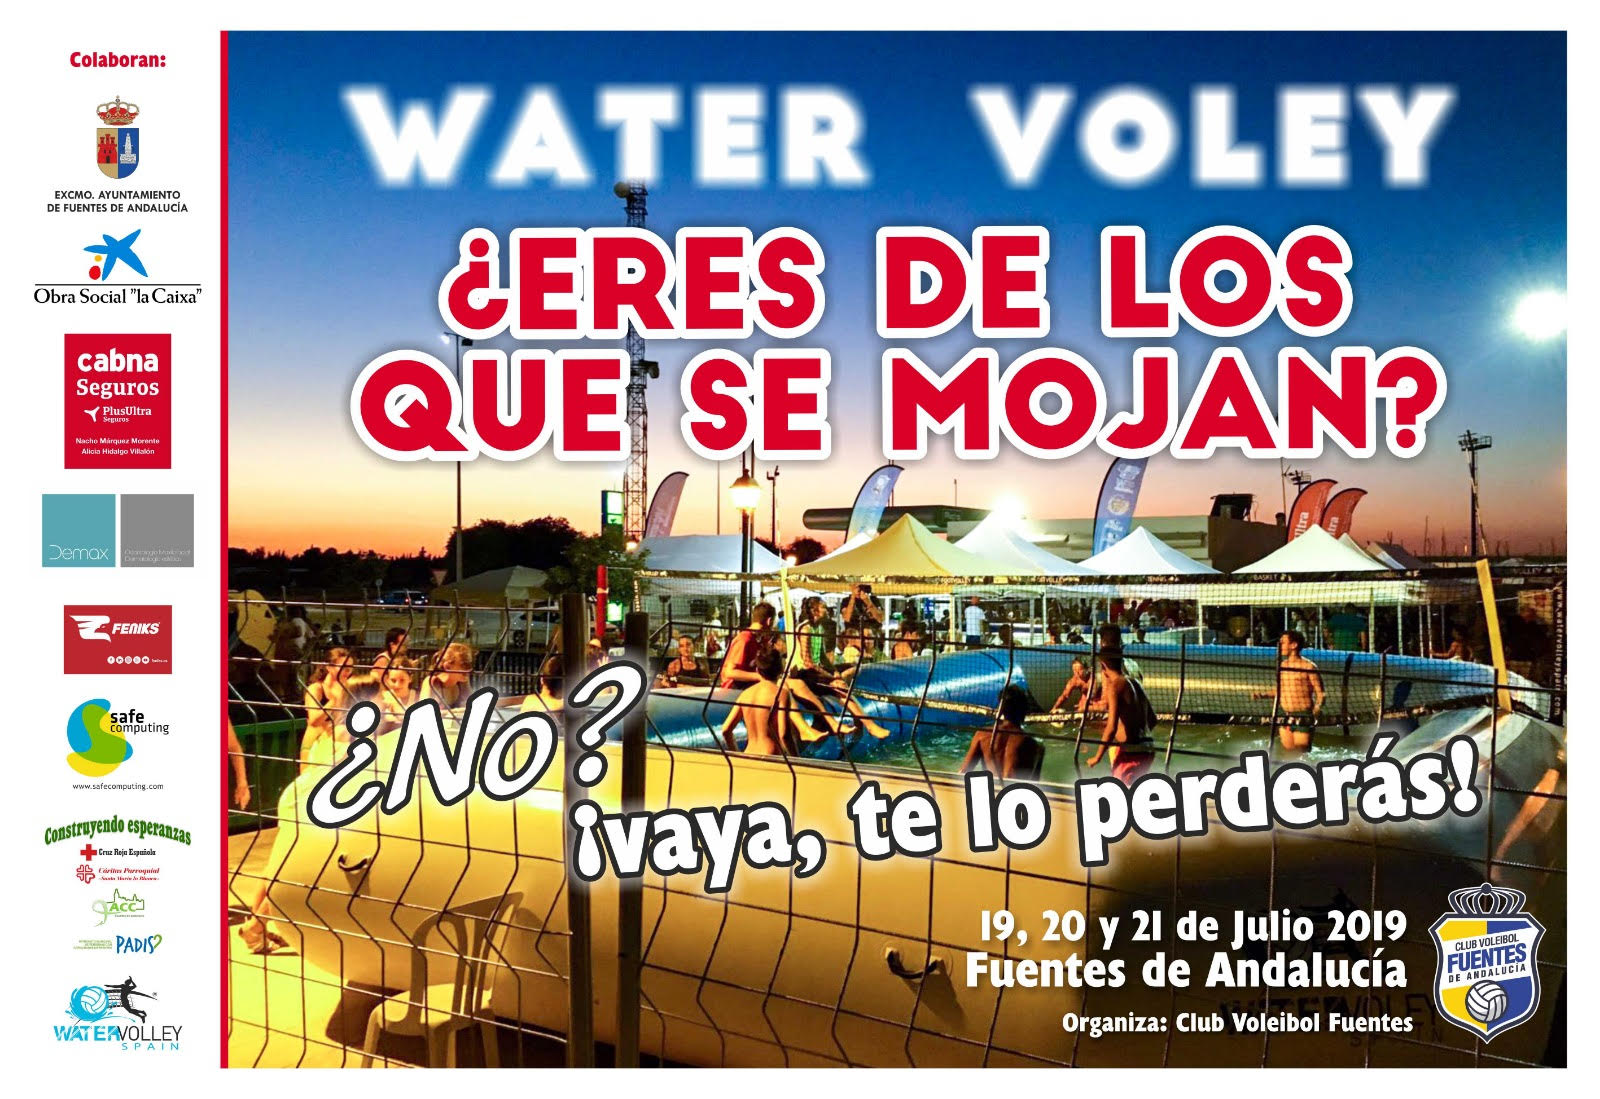 Watervolley Spain fuentes de andalucia